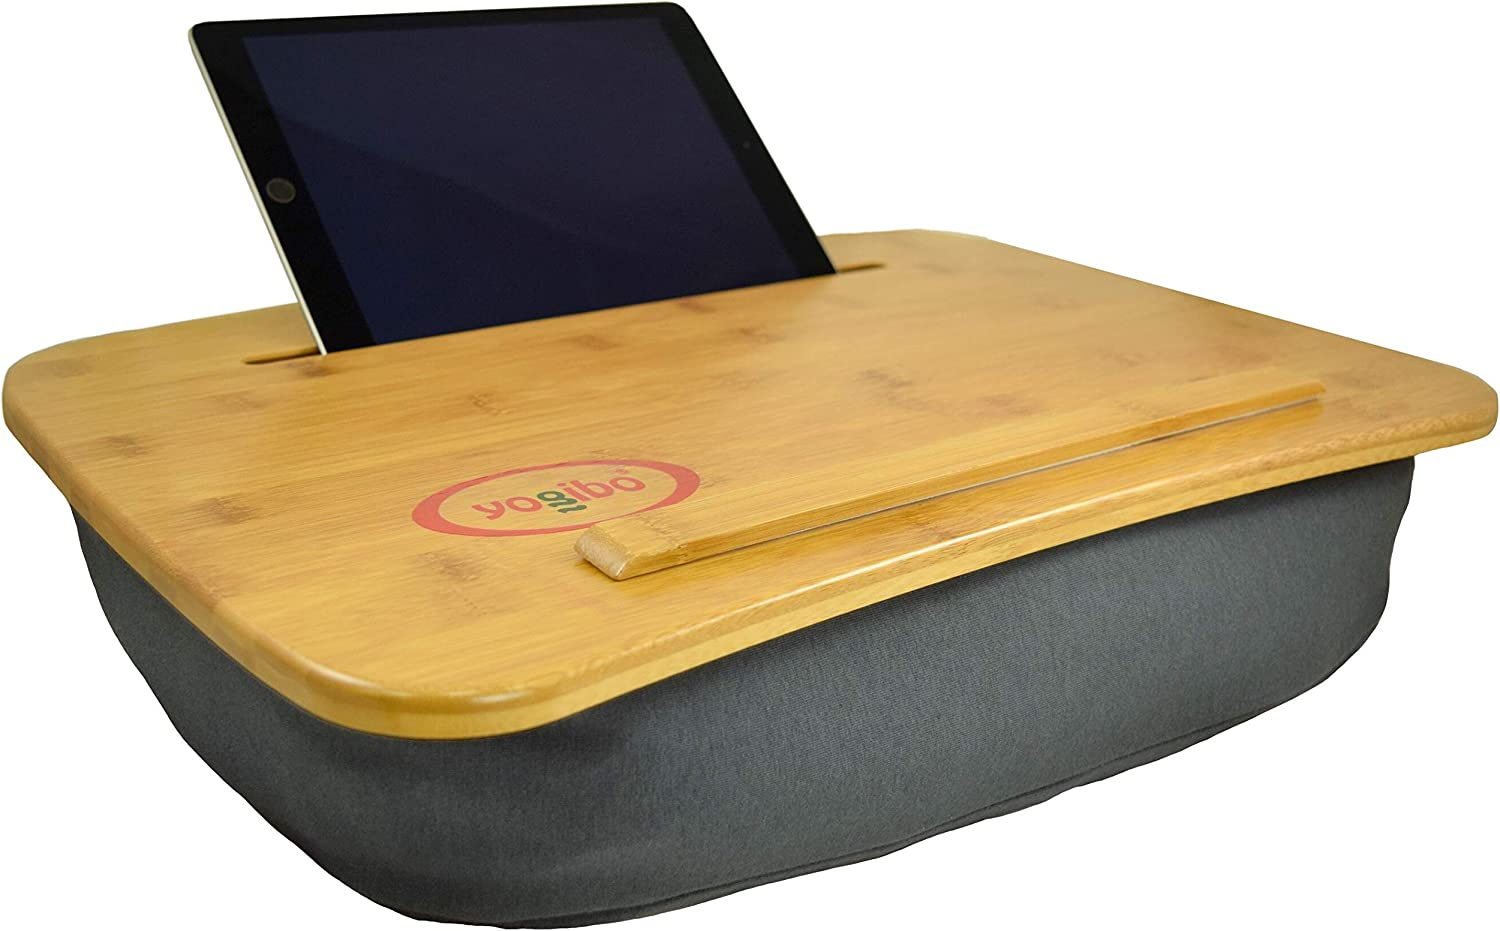 Yogibo Traybo 2.0 Lap Desk, Bamboo Top Lap Desk With Pillow for Laptop Built in Slot for Tablet or Phone, Lap Pad for Working, Reading, Writing, Lap Board, Dark Gray